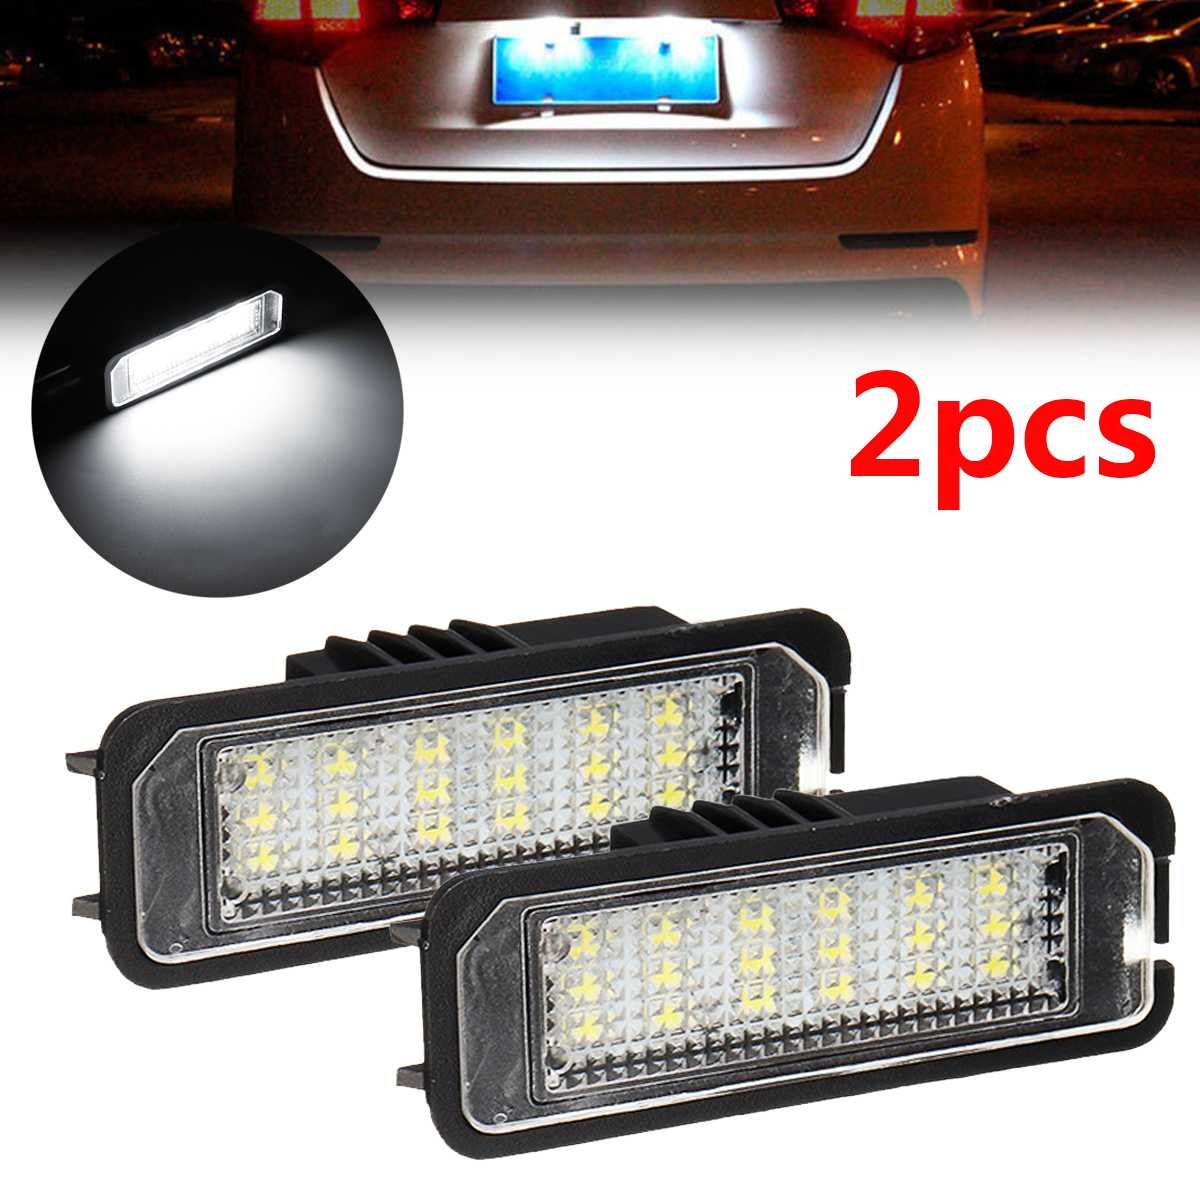 Fits Audi A8 D3 S8 Quattro White 6-SMD LED 39mm Festoon Number Plate Light Bulbs